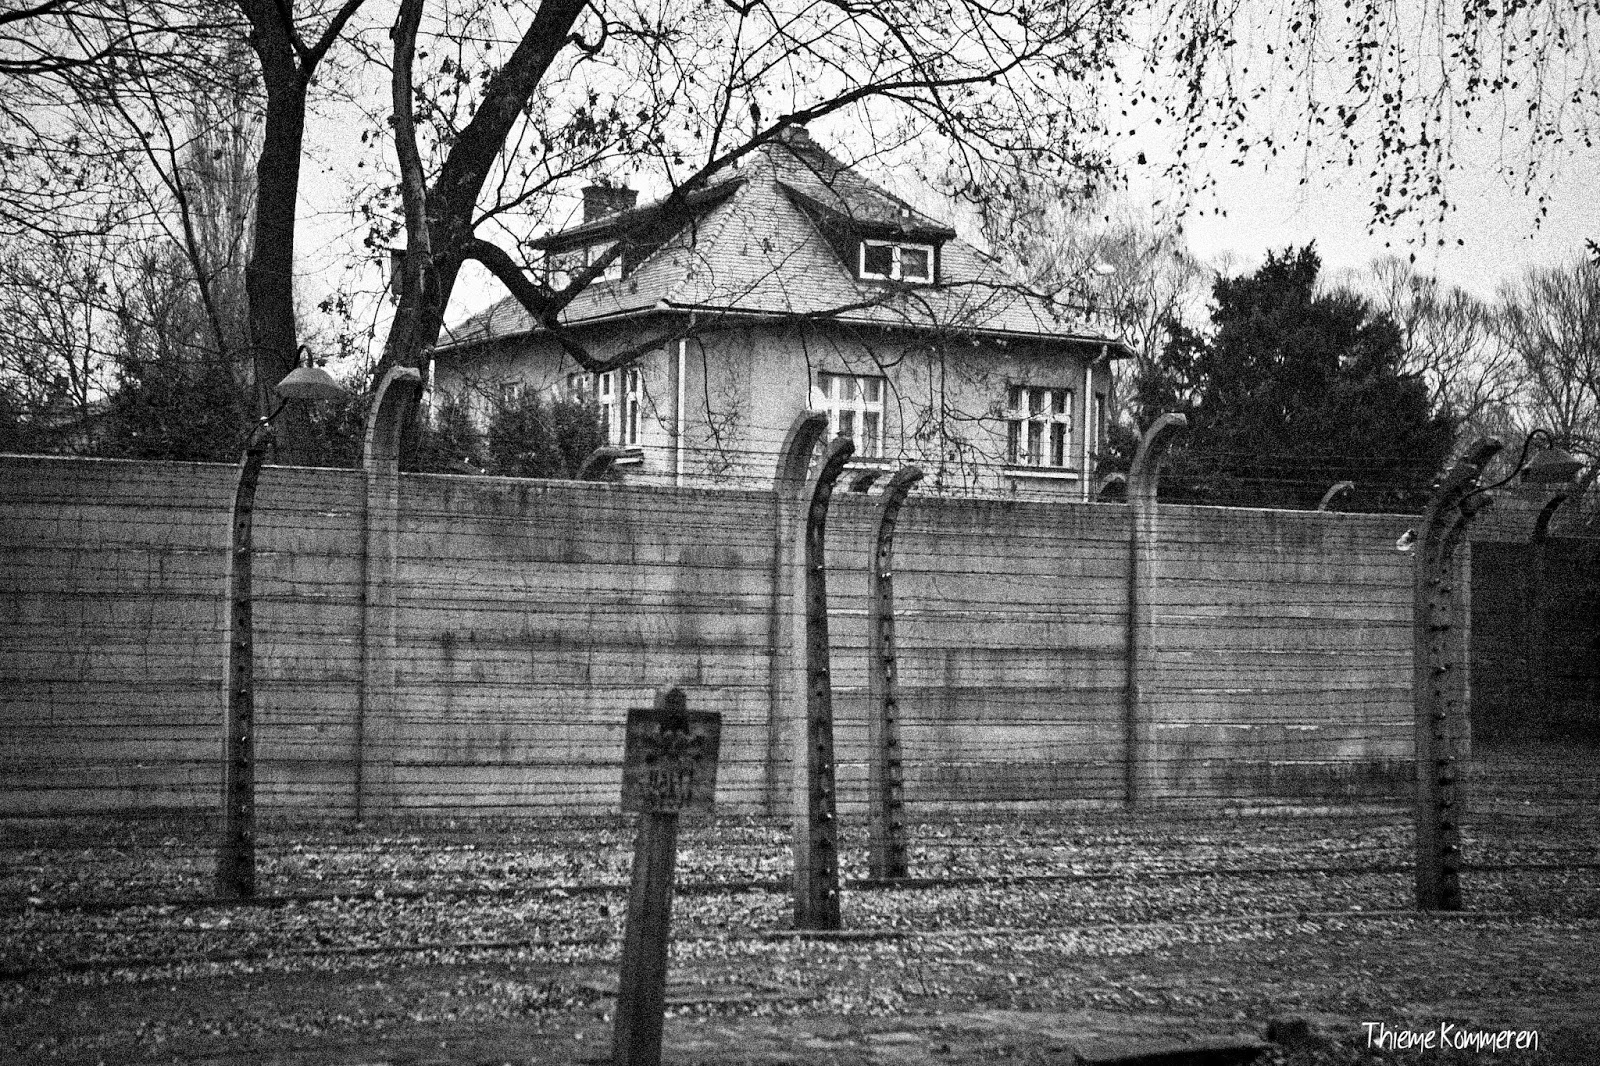 krak oacute w and auschwitz birkenau thieme kommeren photography as you can see some windows look directly over the camp no secrets at all makes you think about boy in the striped pyjamas doesn t it